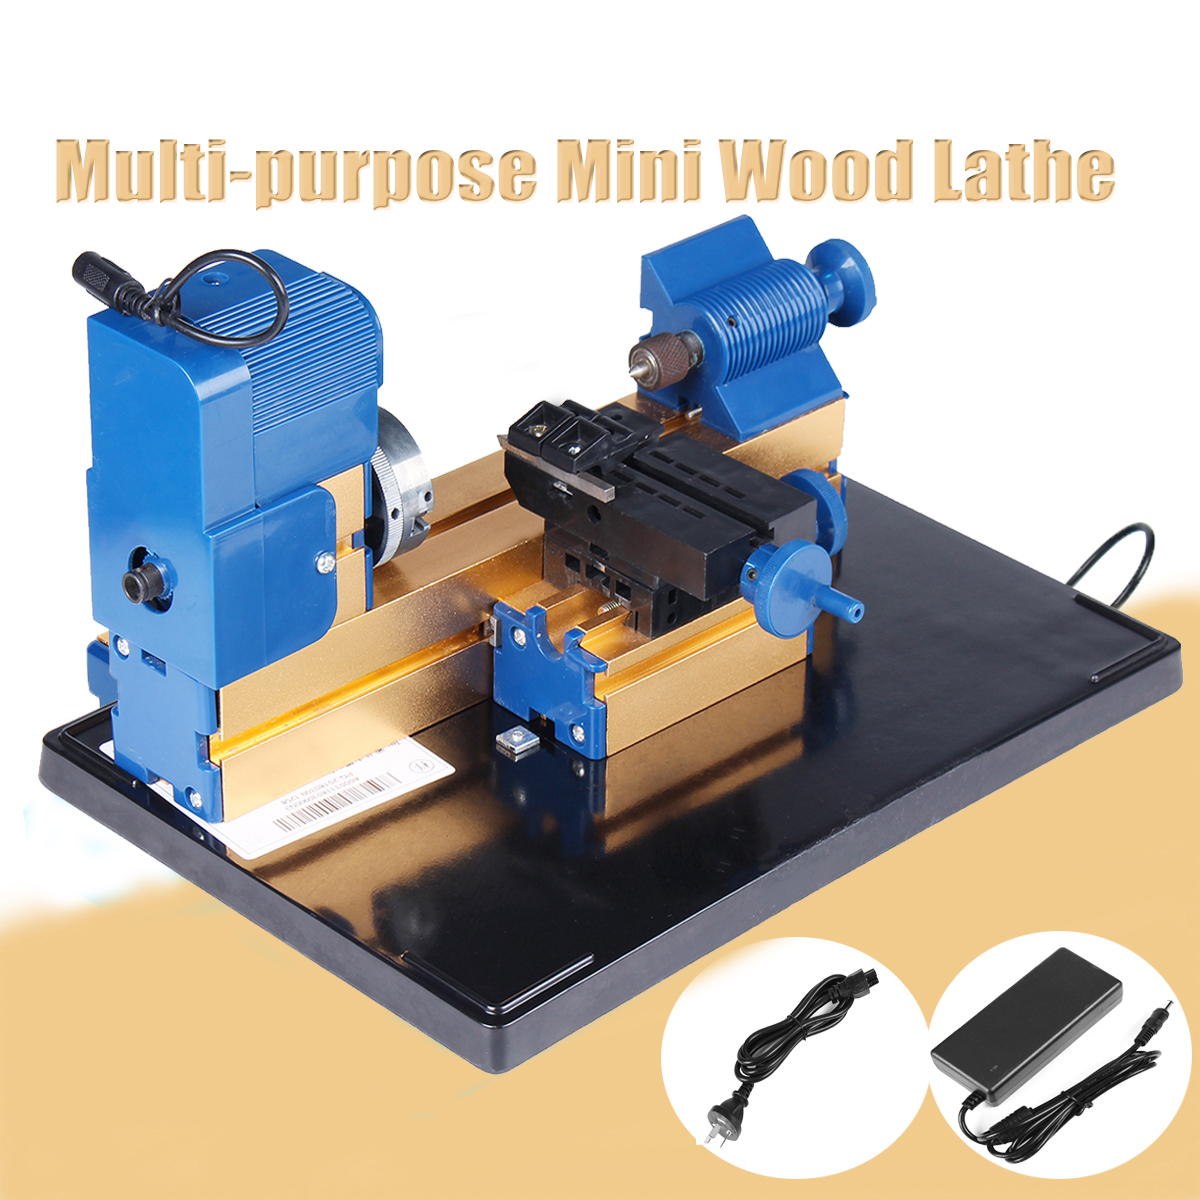 24W DC12V 2A Multifunction Mini Wood Lathe Motorized Jig saw Bead Grinder Driller Woodworking Turning Cutting Bead Tool